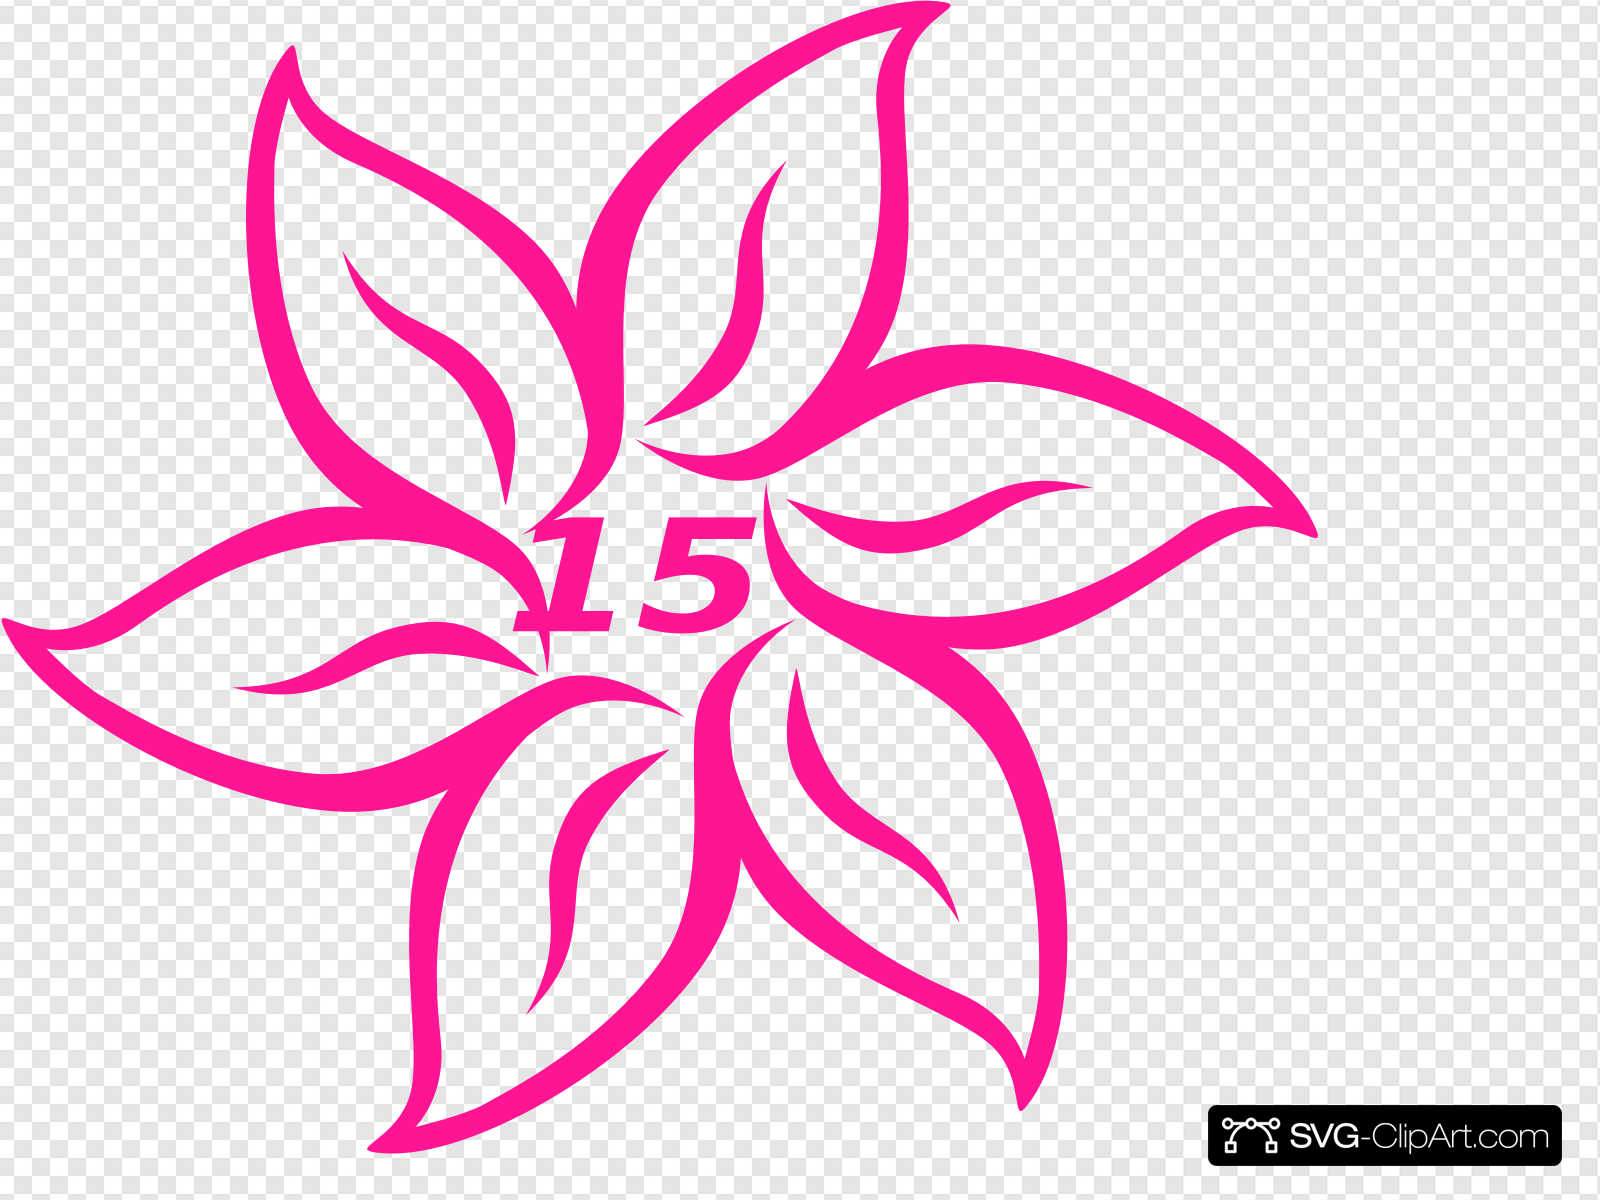 Flower Fifteen Pink Clip art, Icon and SVG.